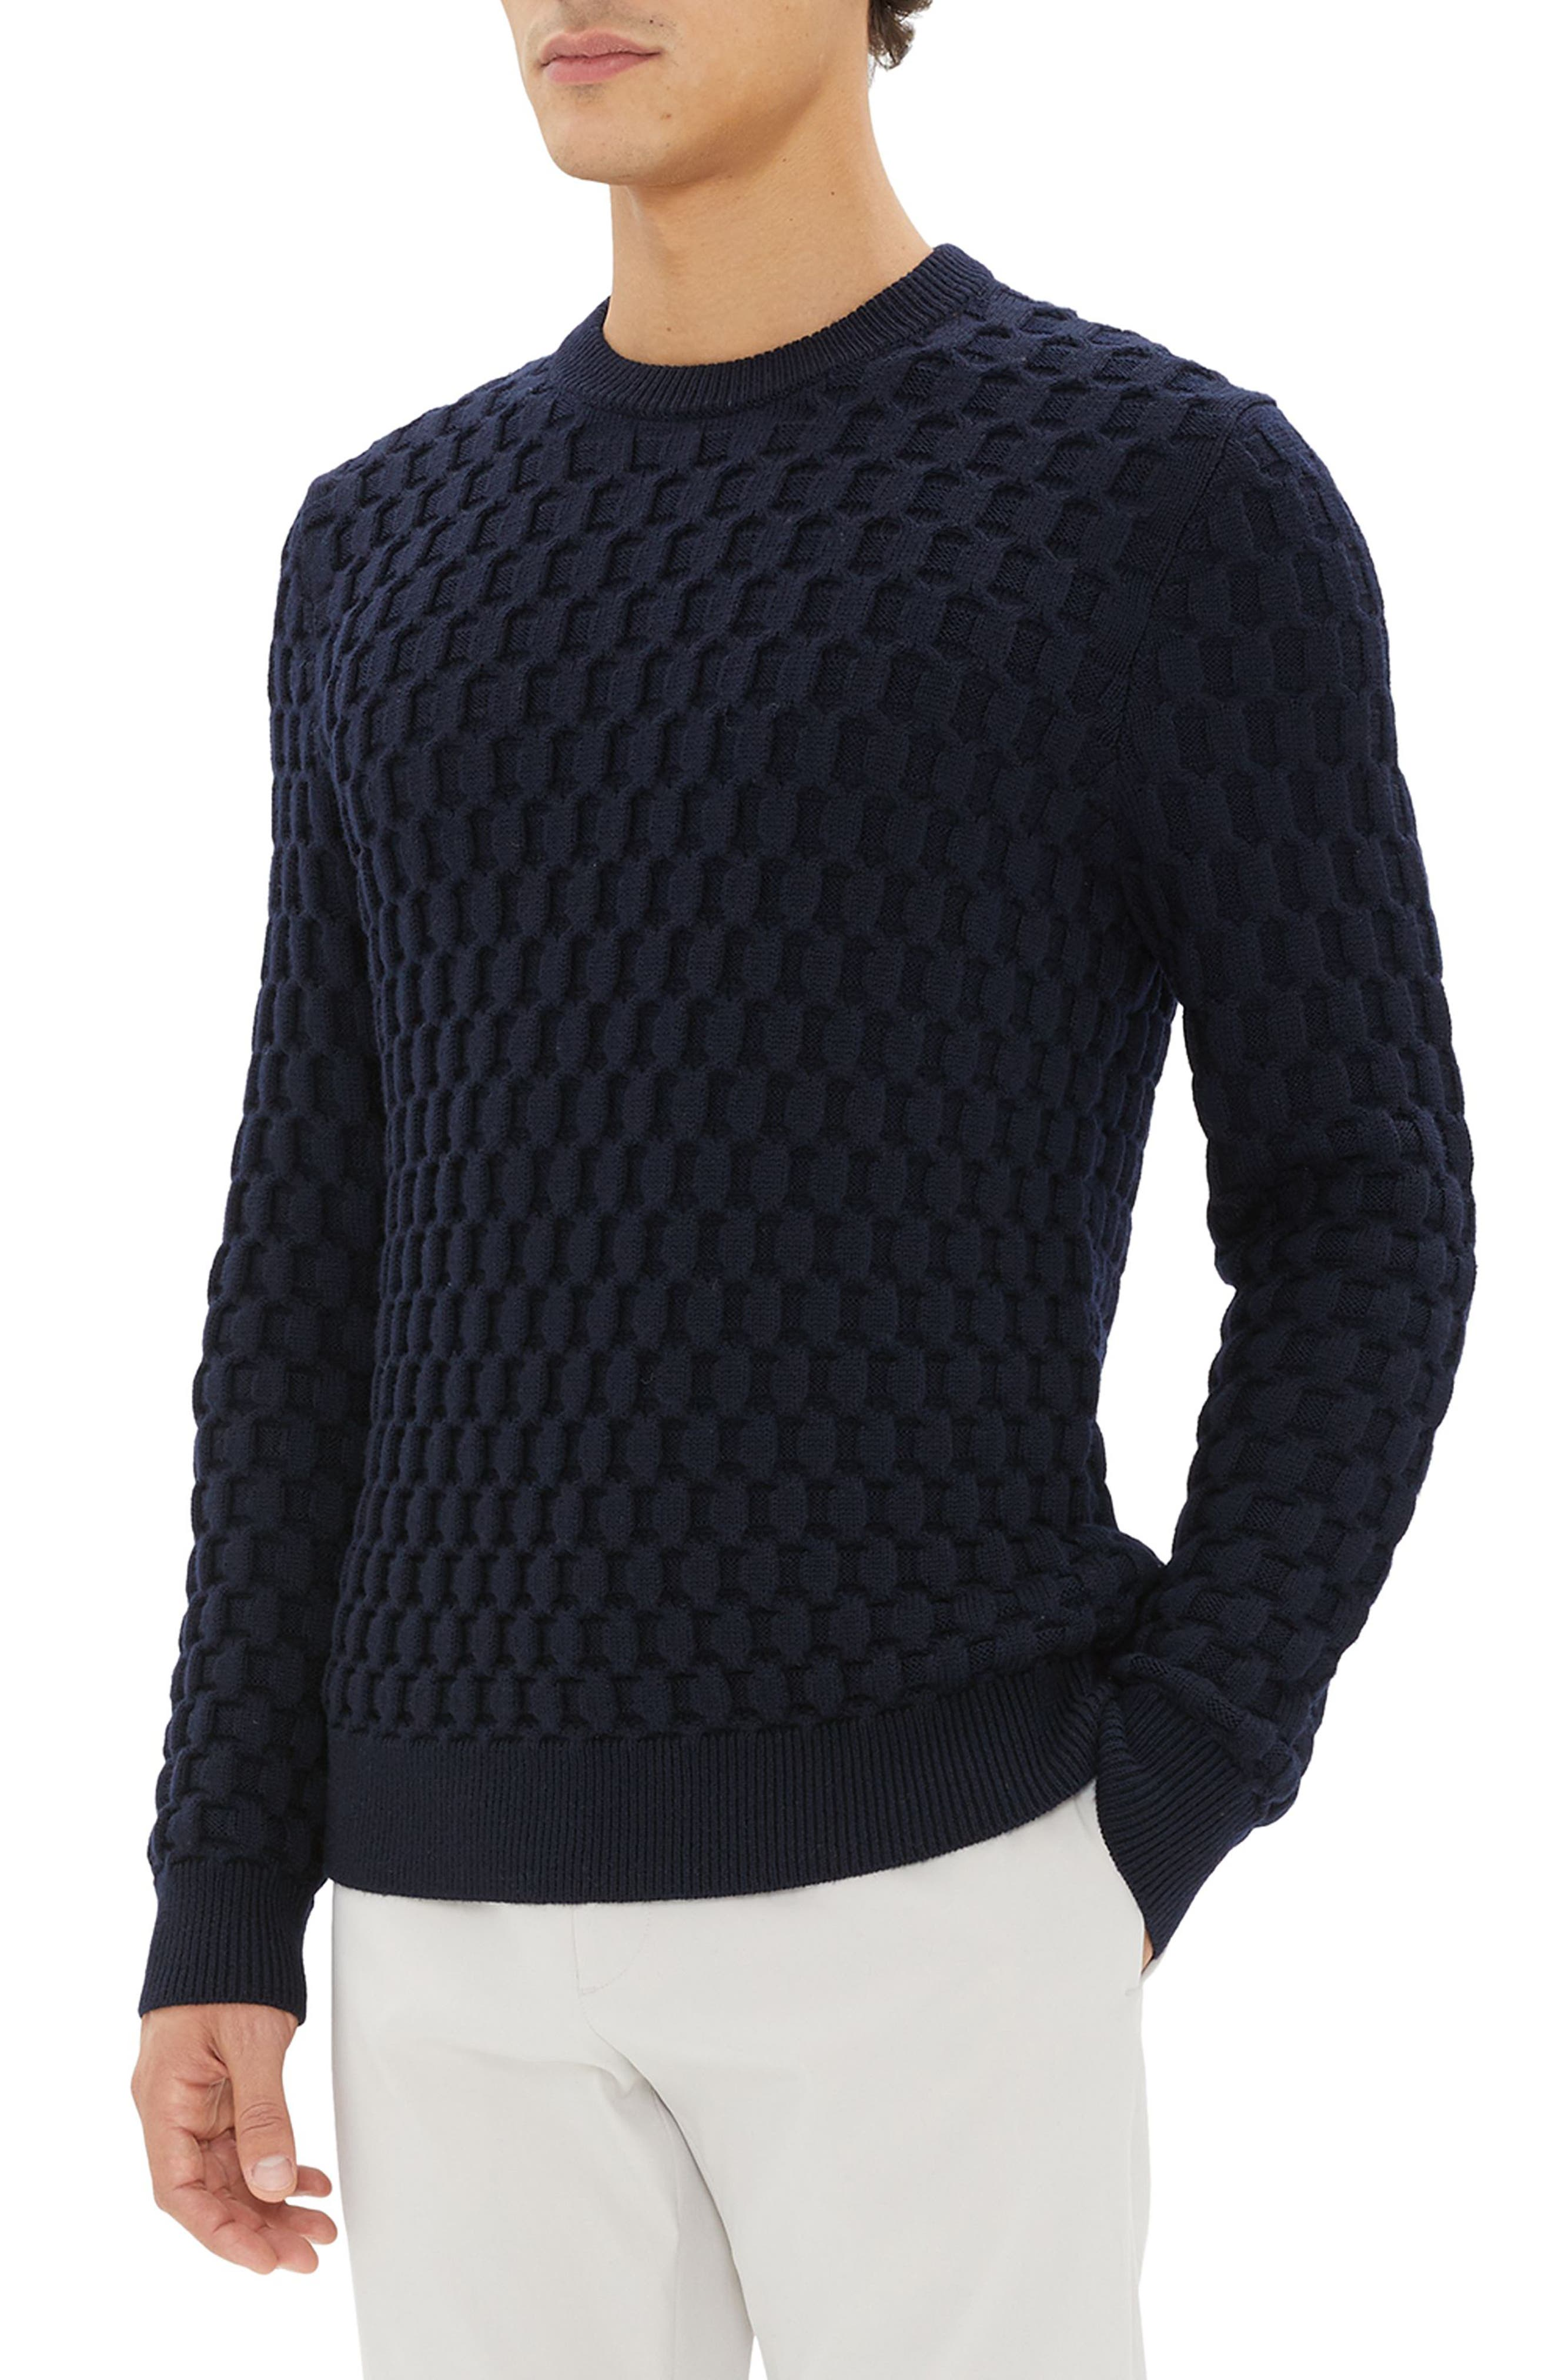 Marcos Honeycomb Merino Wool Sweater,                             Alternate thumbnail 2, color,                             ECLIPSE